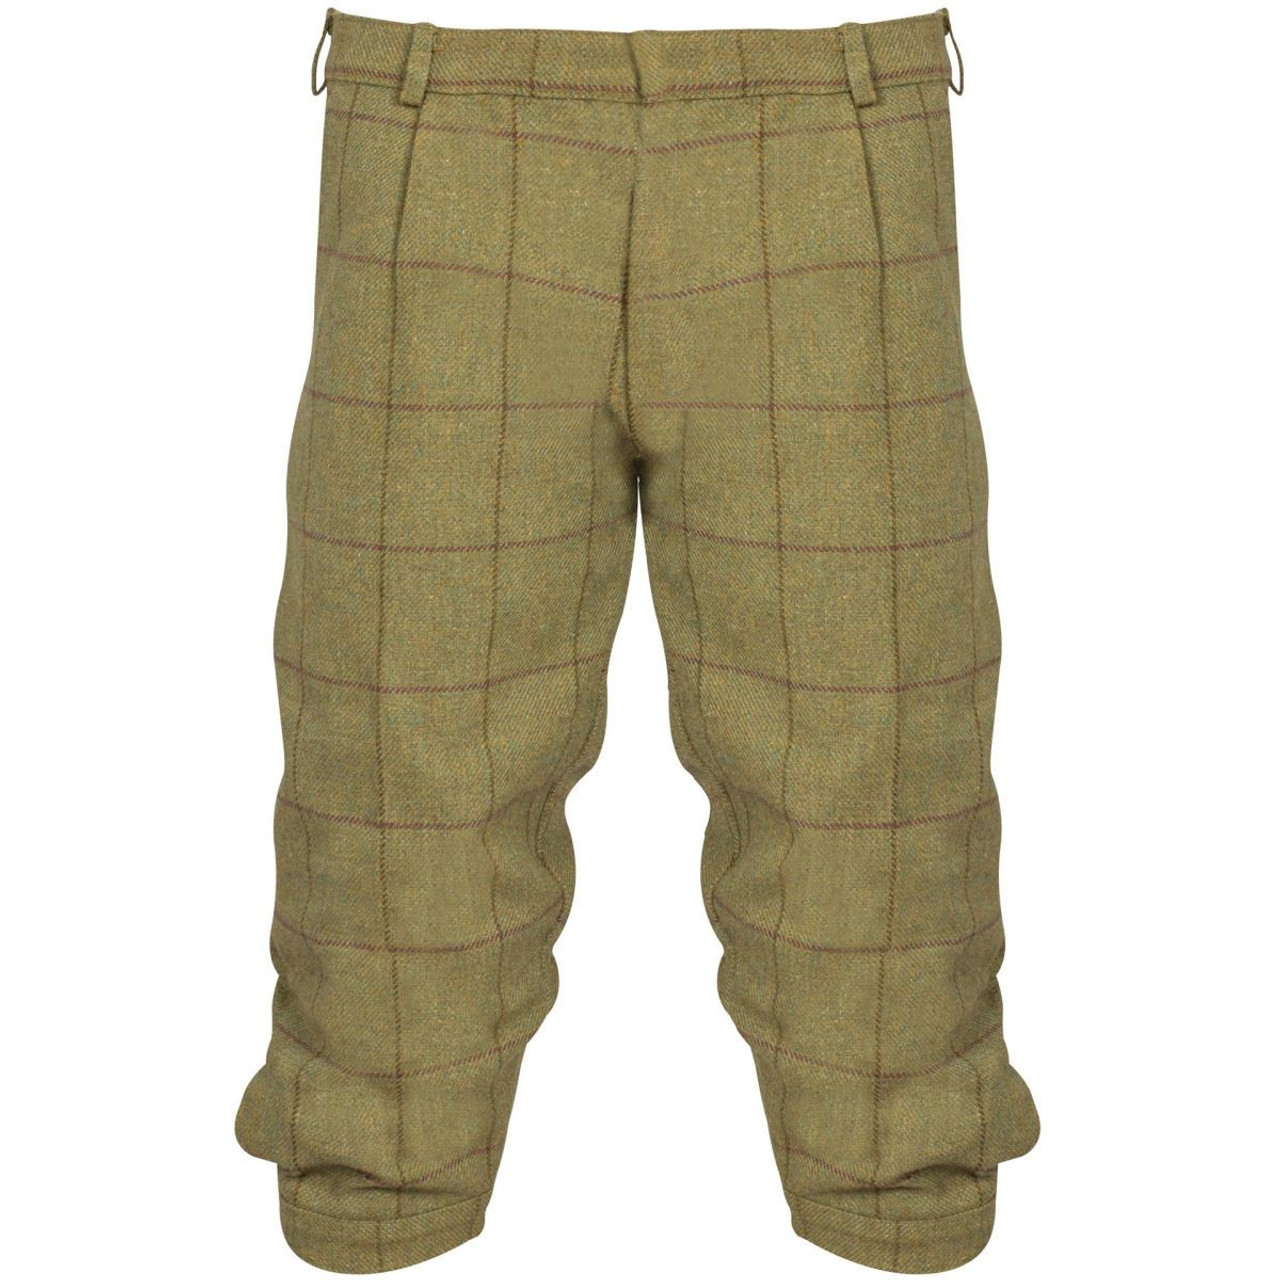 Lichen Alan Paine Mens Rutland Breeks